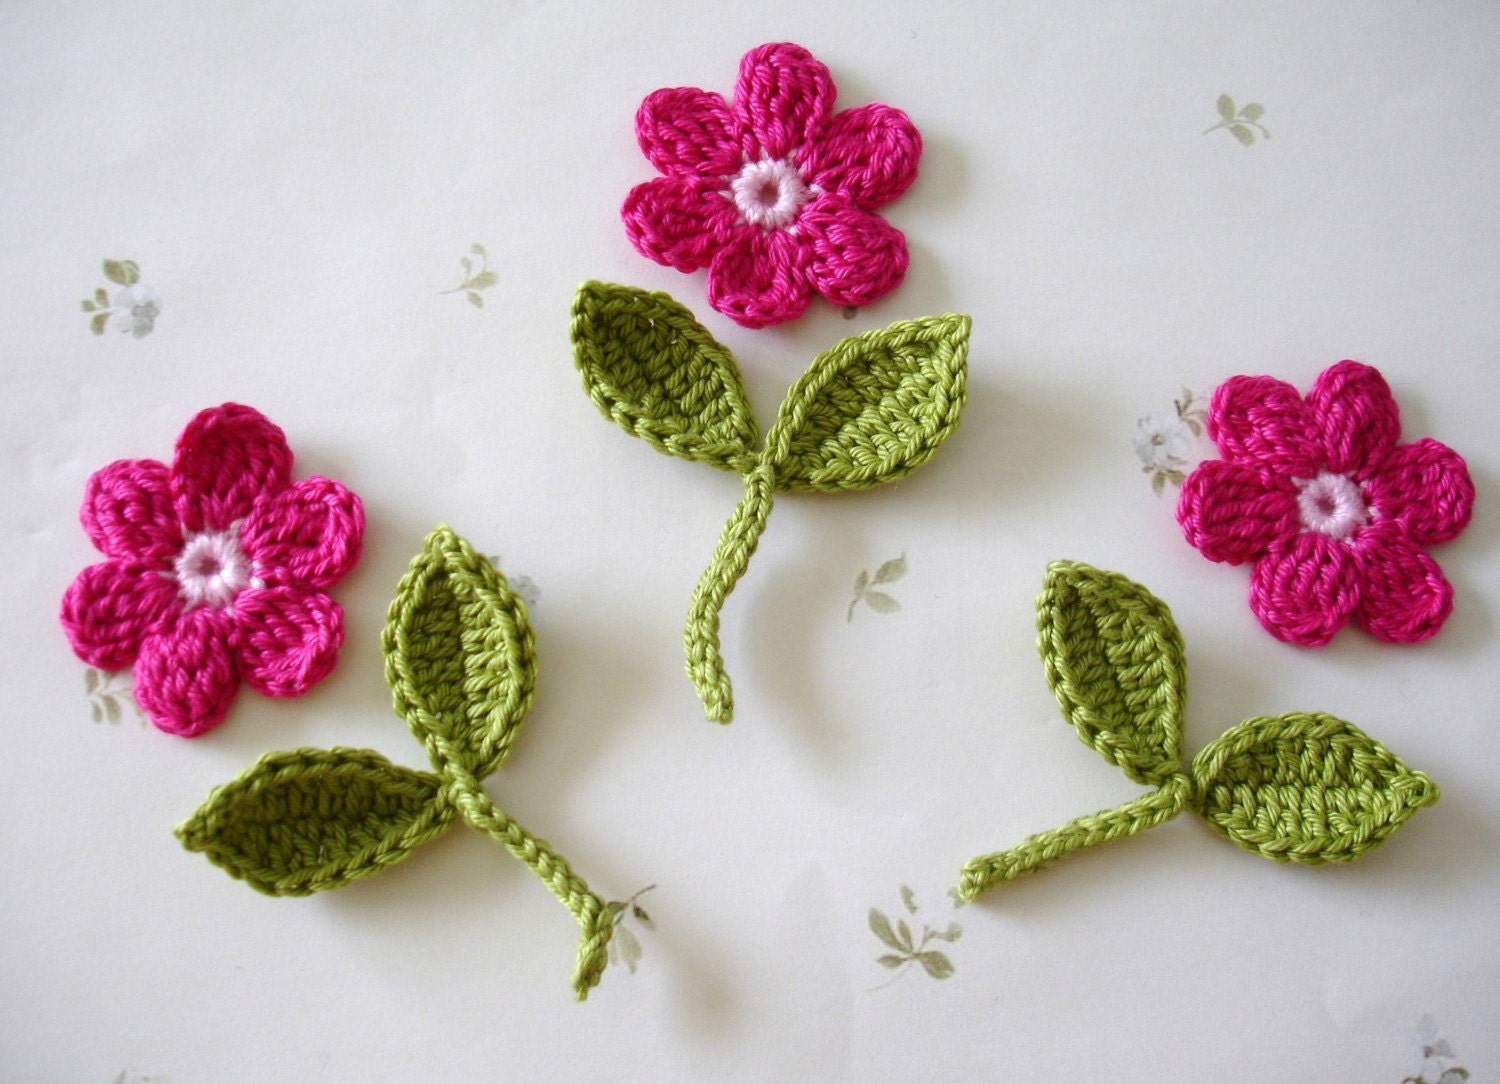 Crochet A Flower : CROCHET CROCHETED FLOWER - Crochet - Learn How to Crochet